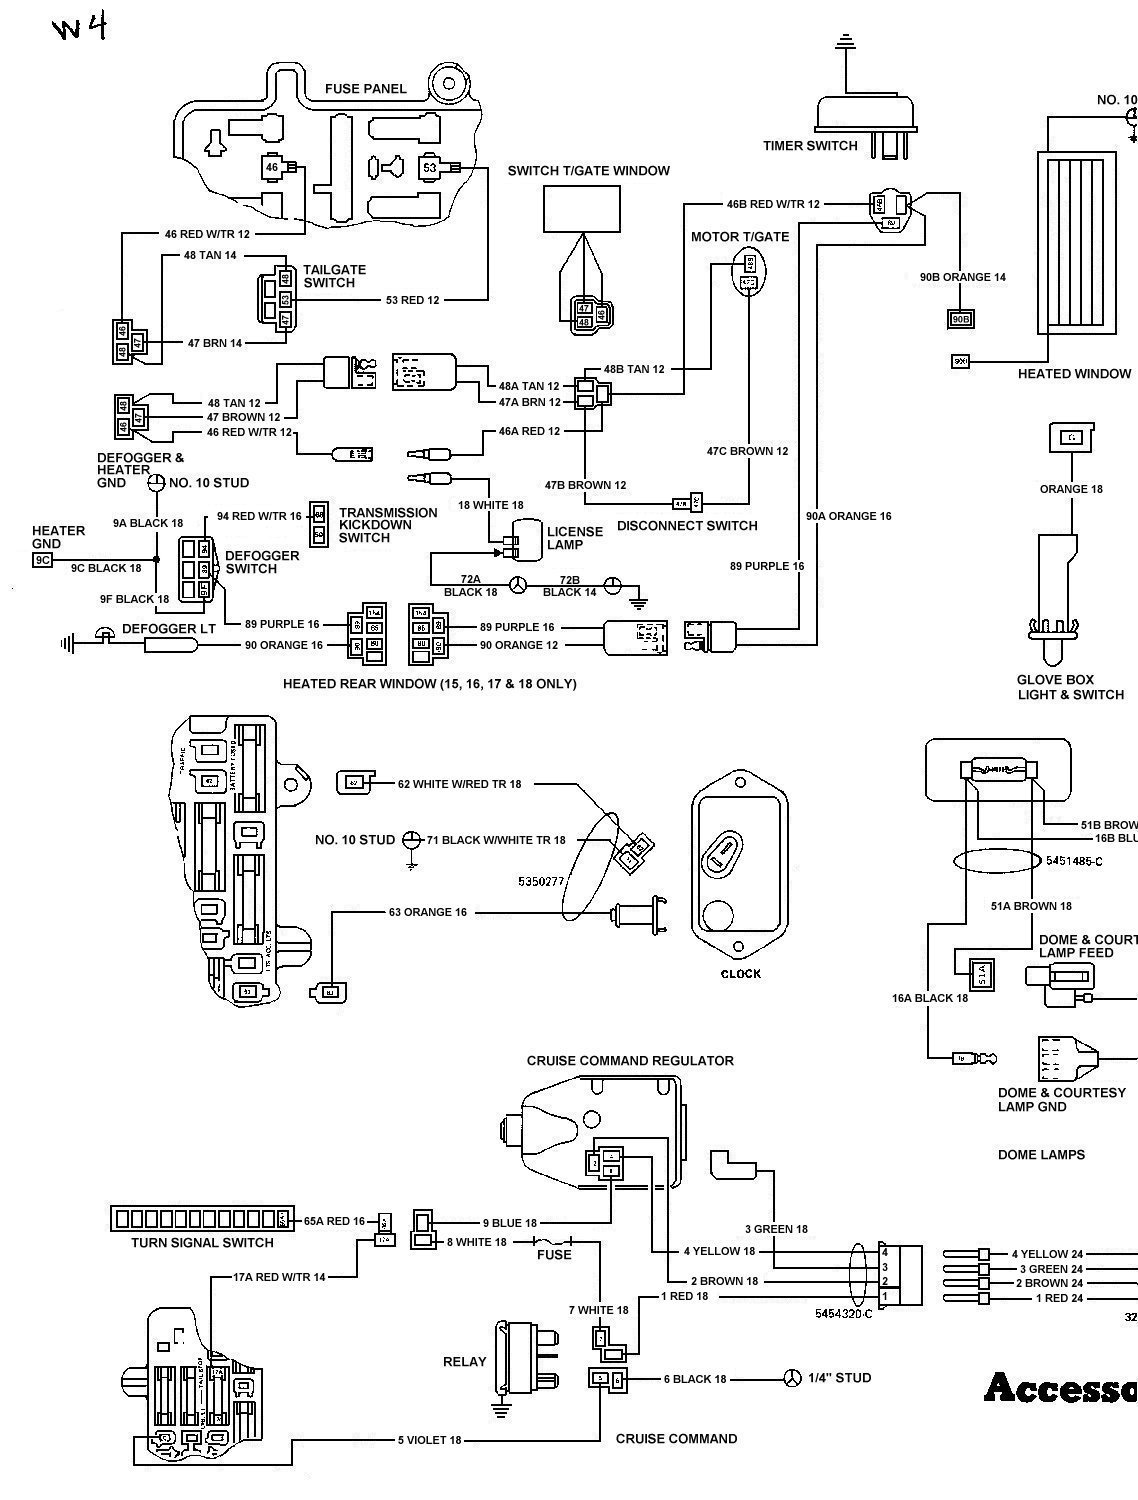 76 Jeep Cj5 Wiring Diagram